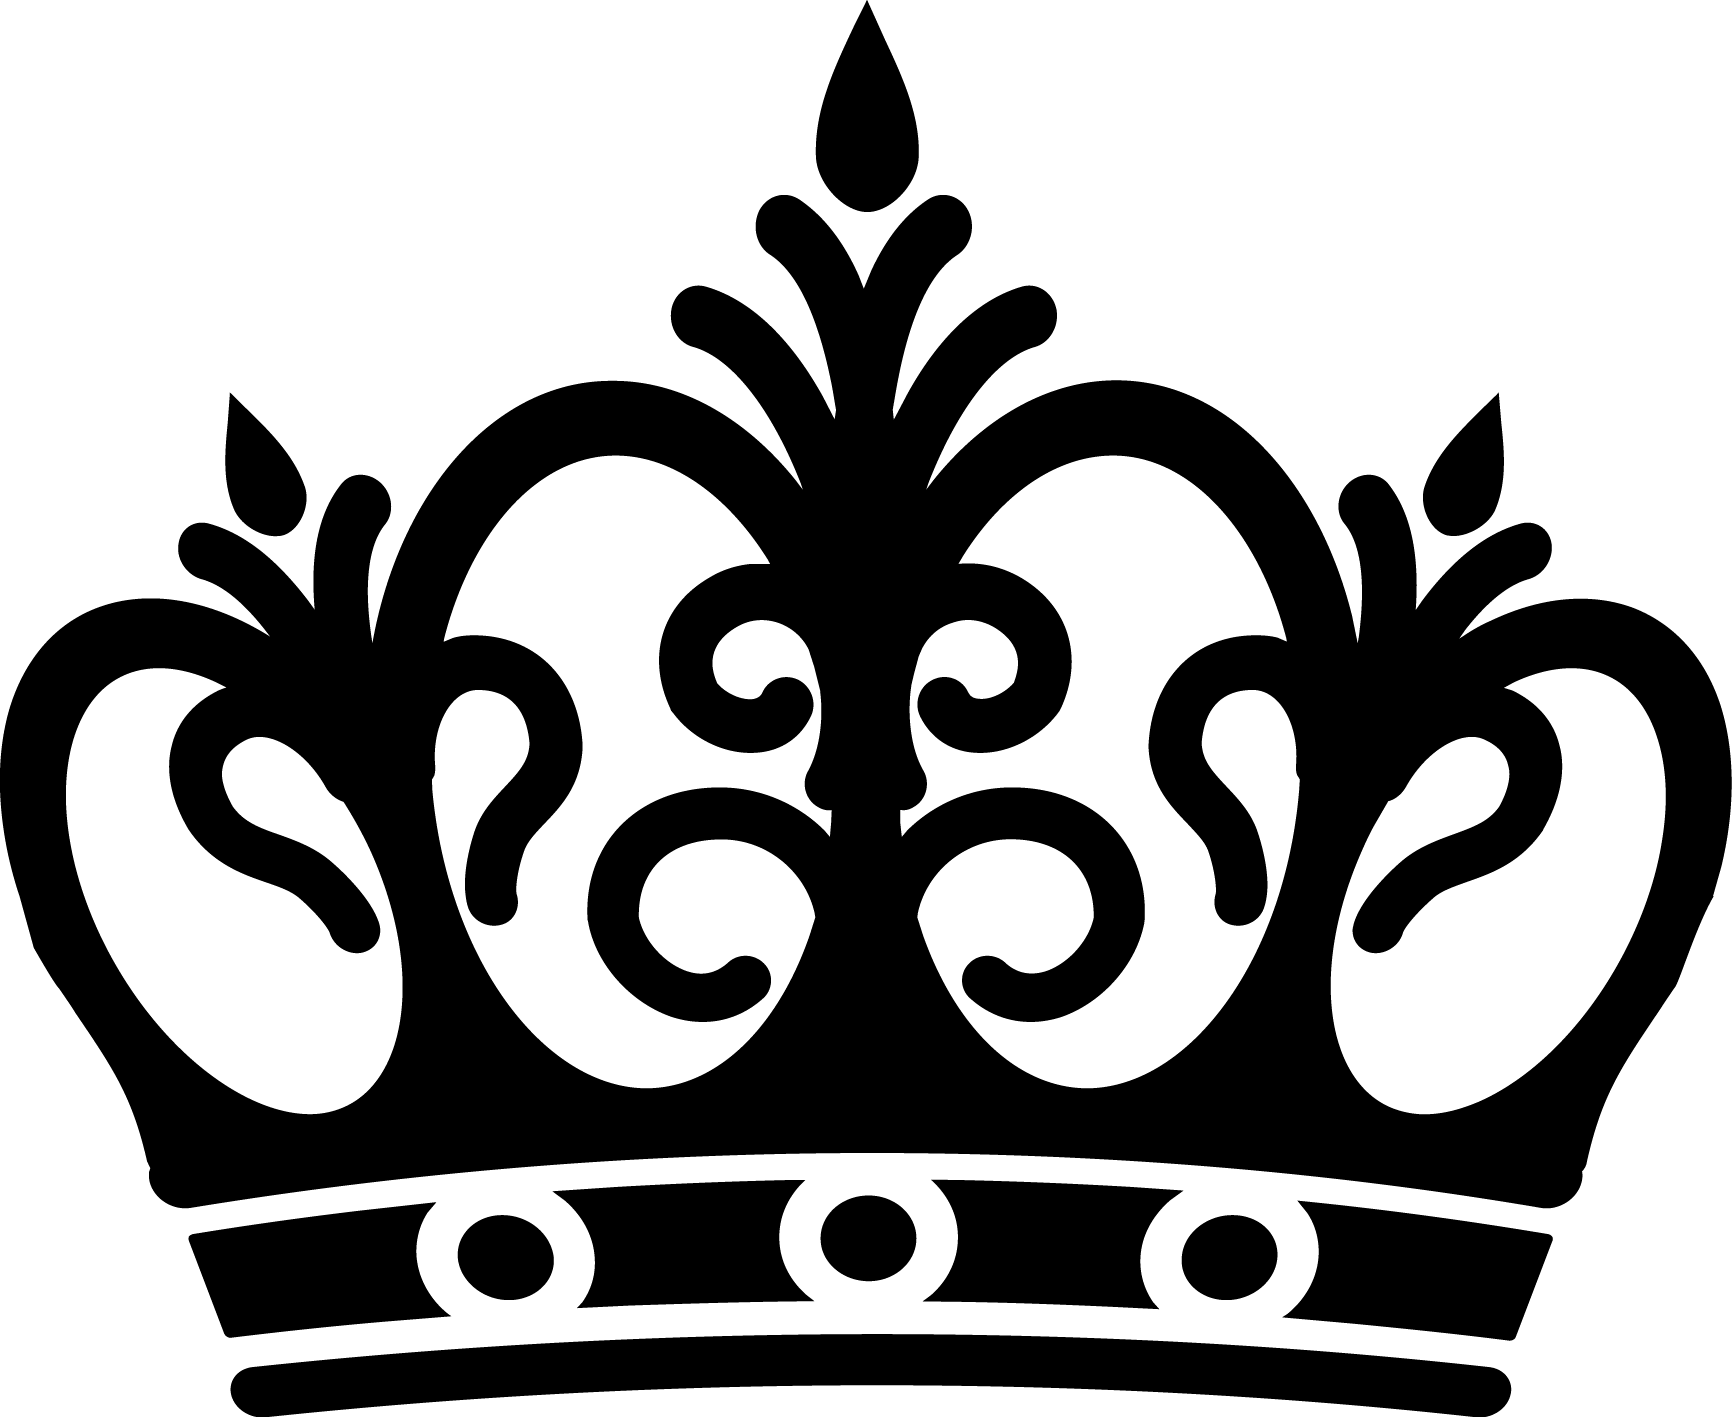 Famous with crown clipart freeuse library crown vector png - Buscar con Google | Tatuajes | Pinterest | Crown ... freeuse library